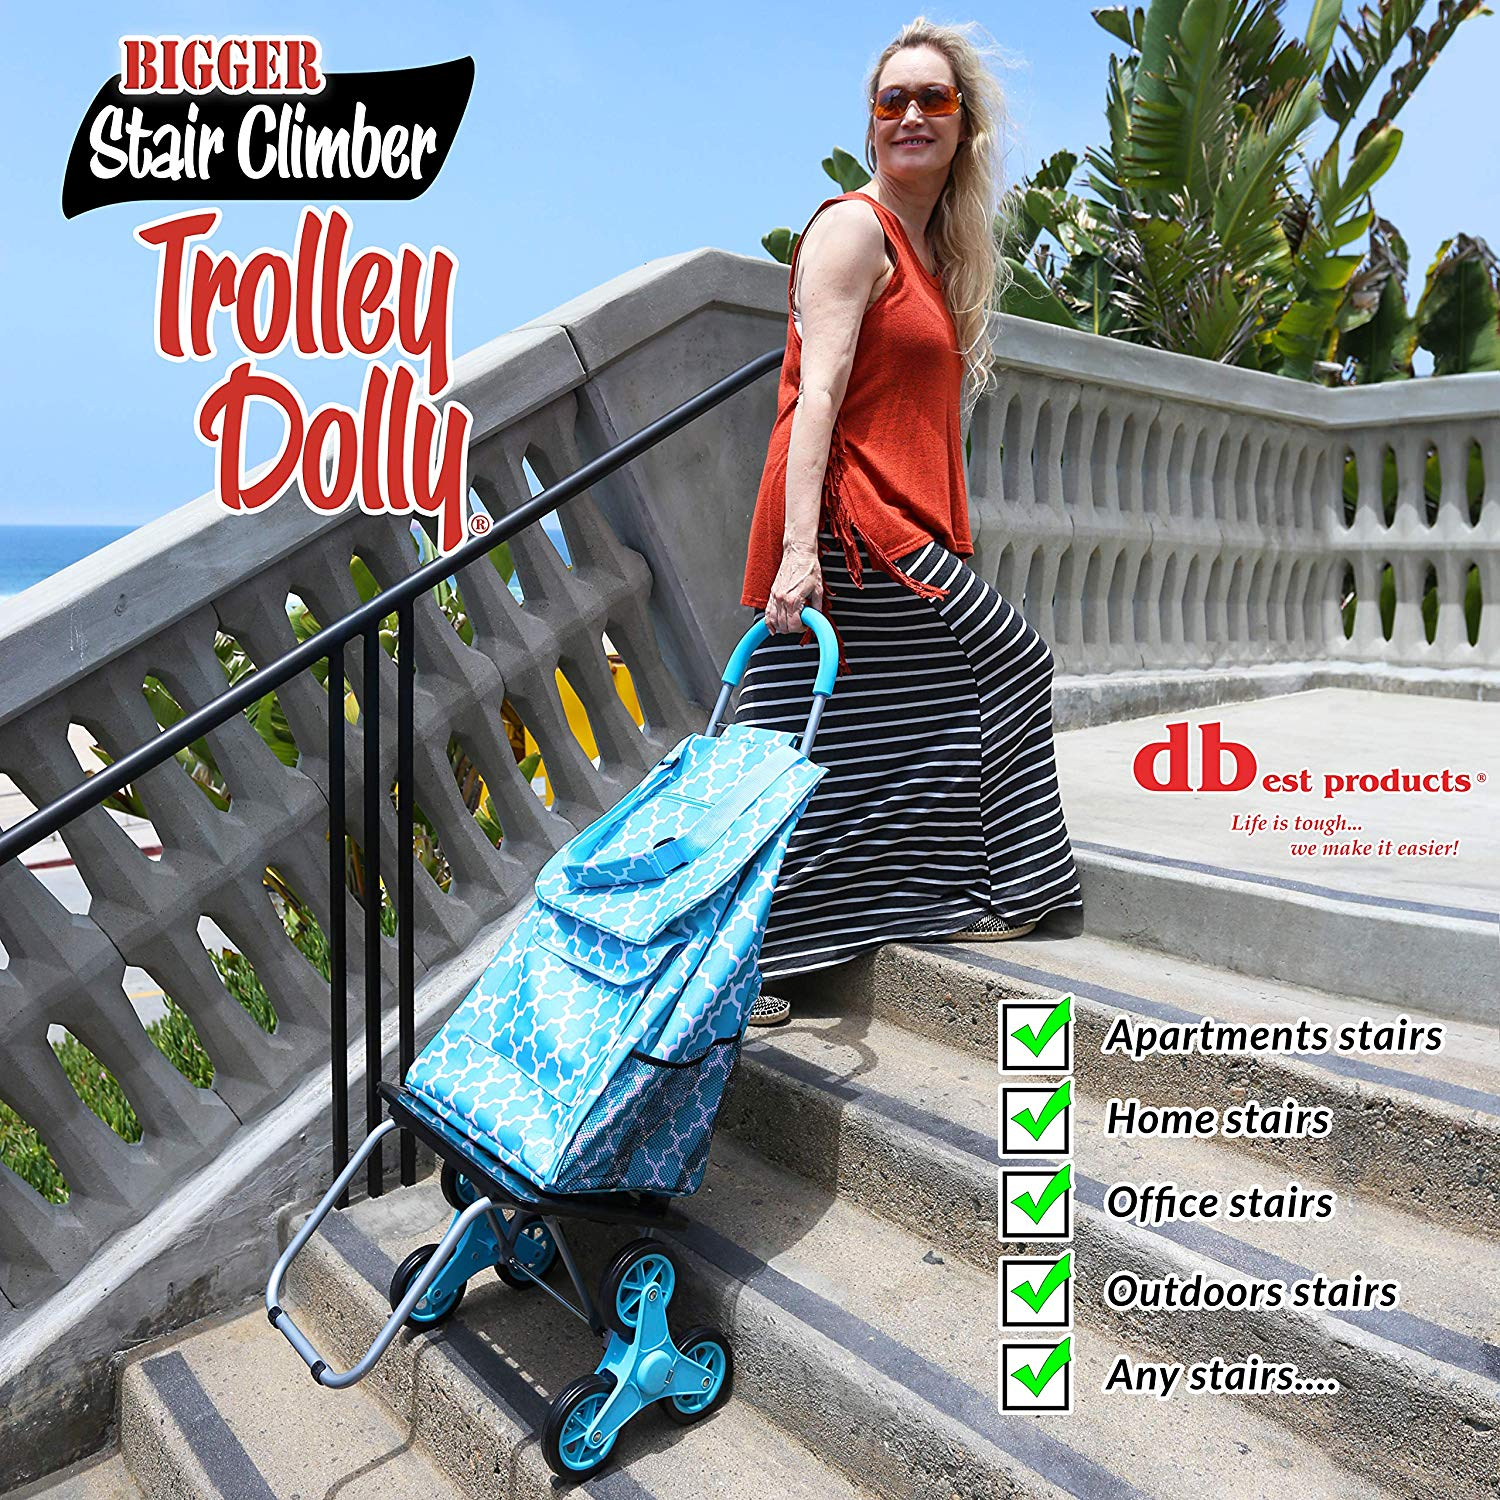 Top 10 Best Stair Climber dolly's in 2019 - All Top Ten Reviews